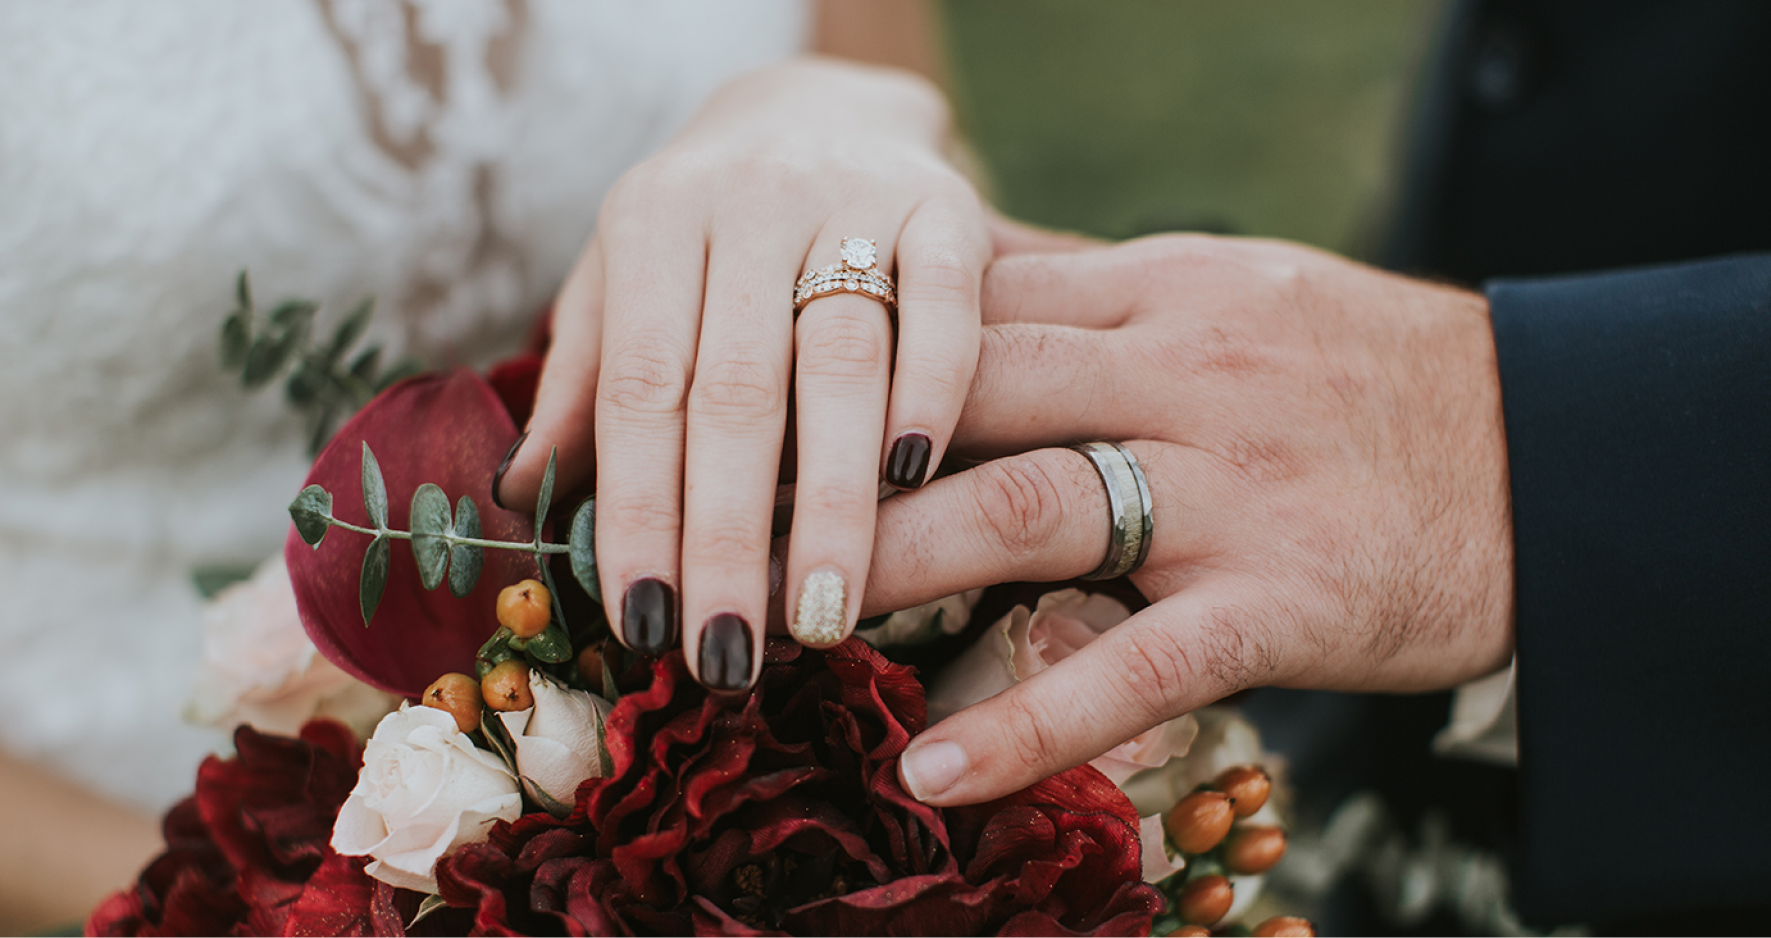 Married Couple Overlapping Hands On Top Of Flower Bouquet Showing Wedding Rings